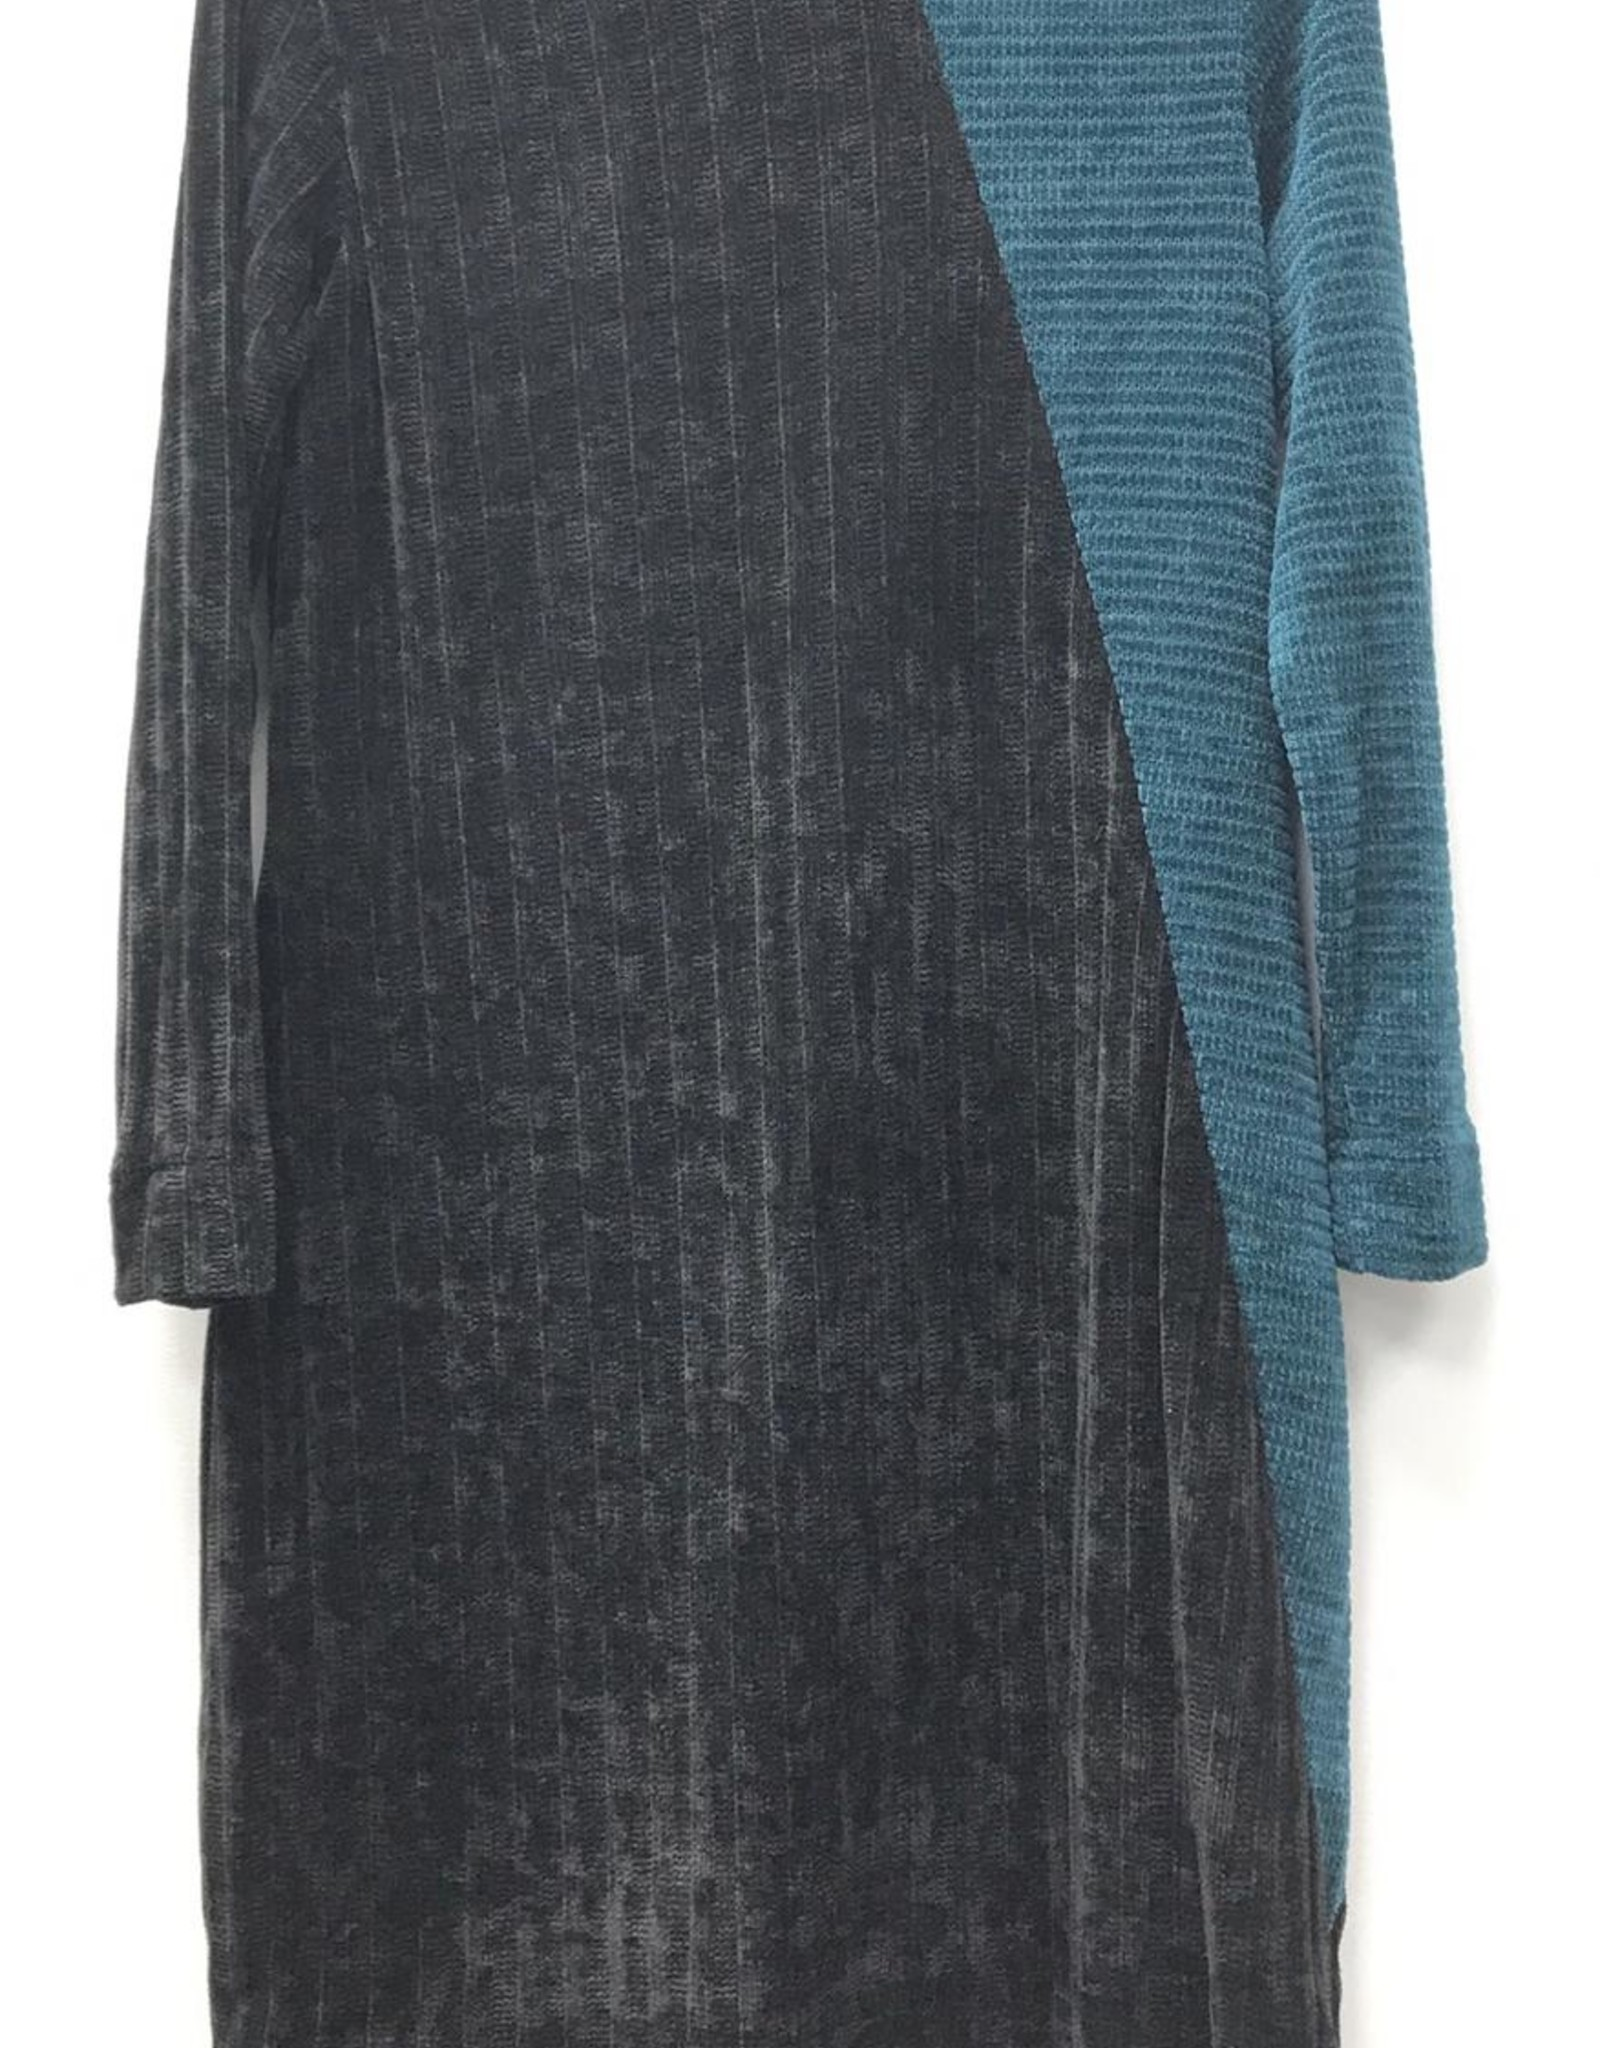 iPosh iPosh Colorblock Chenille Textured Dress